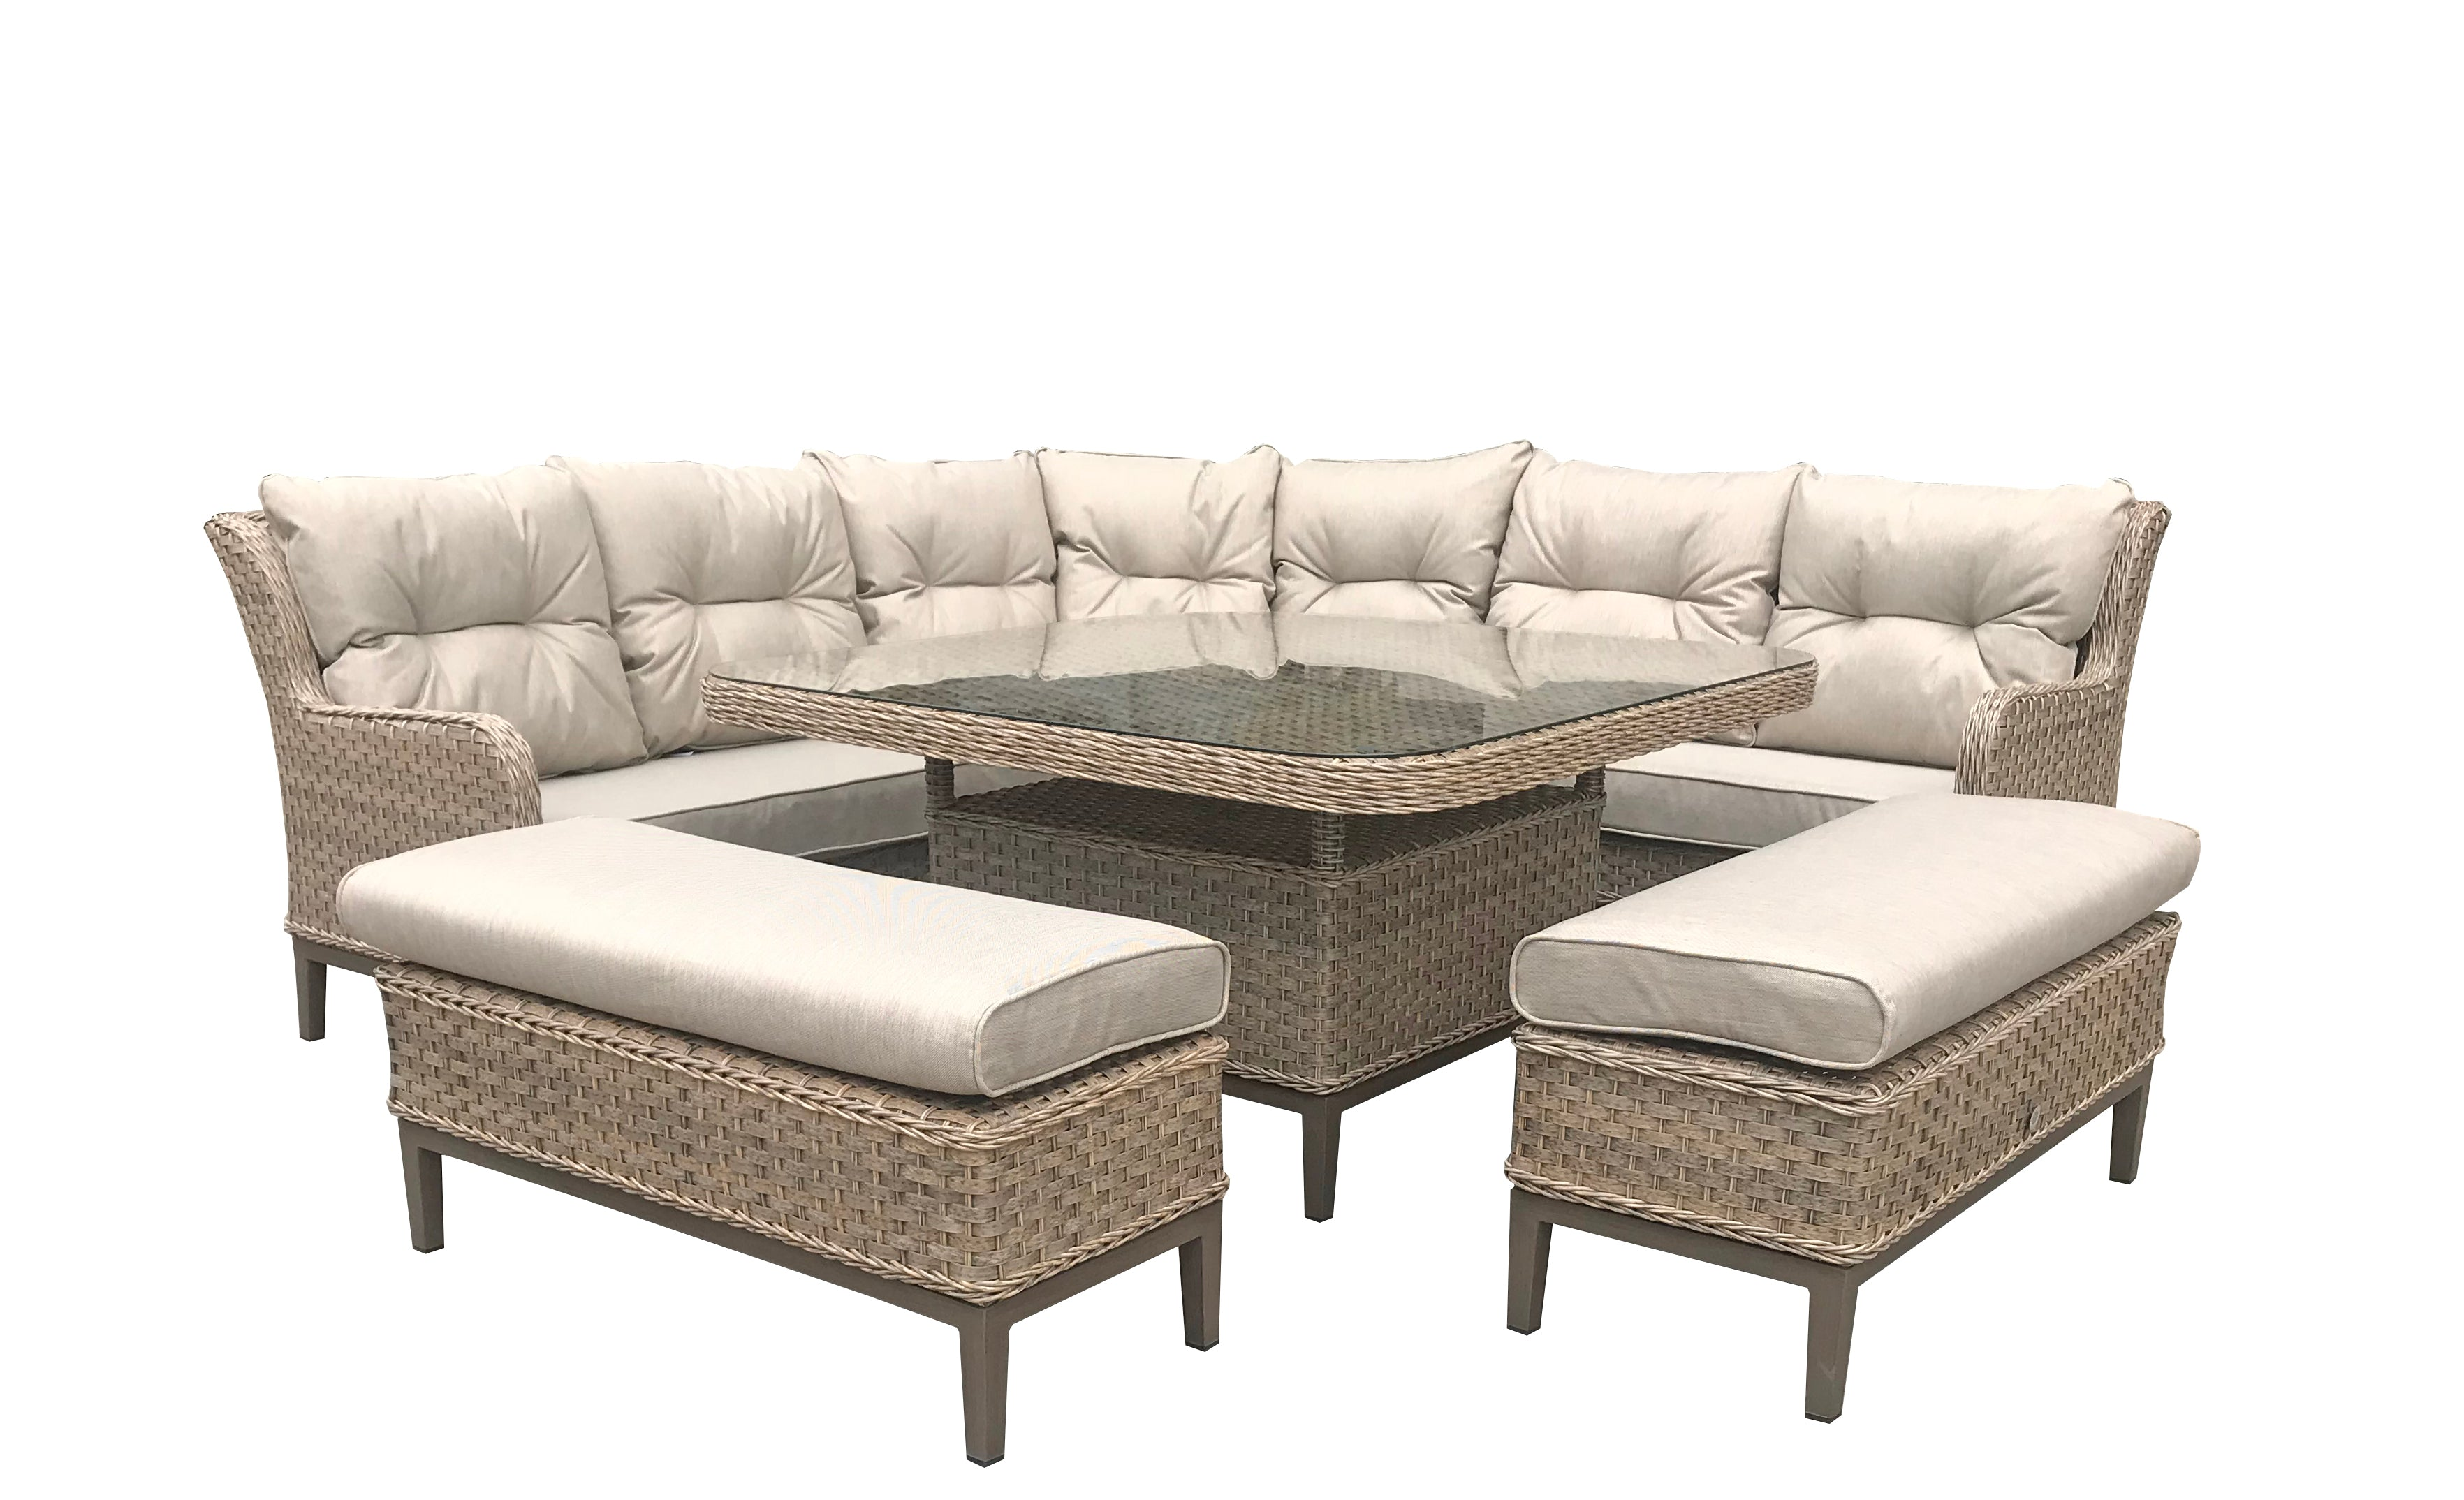 Signature Weave Diana corner dining sofa with 2 ottoman bench seats - GardenPromos